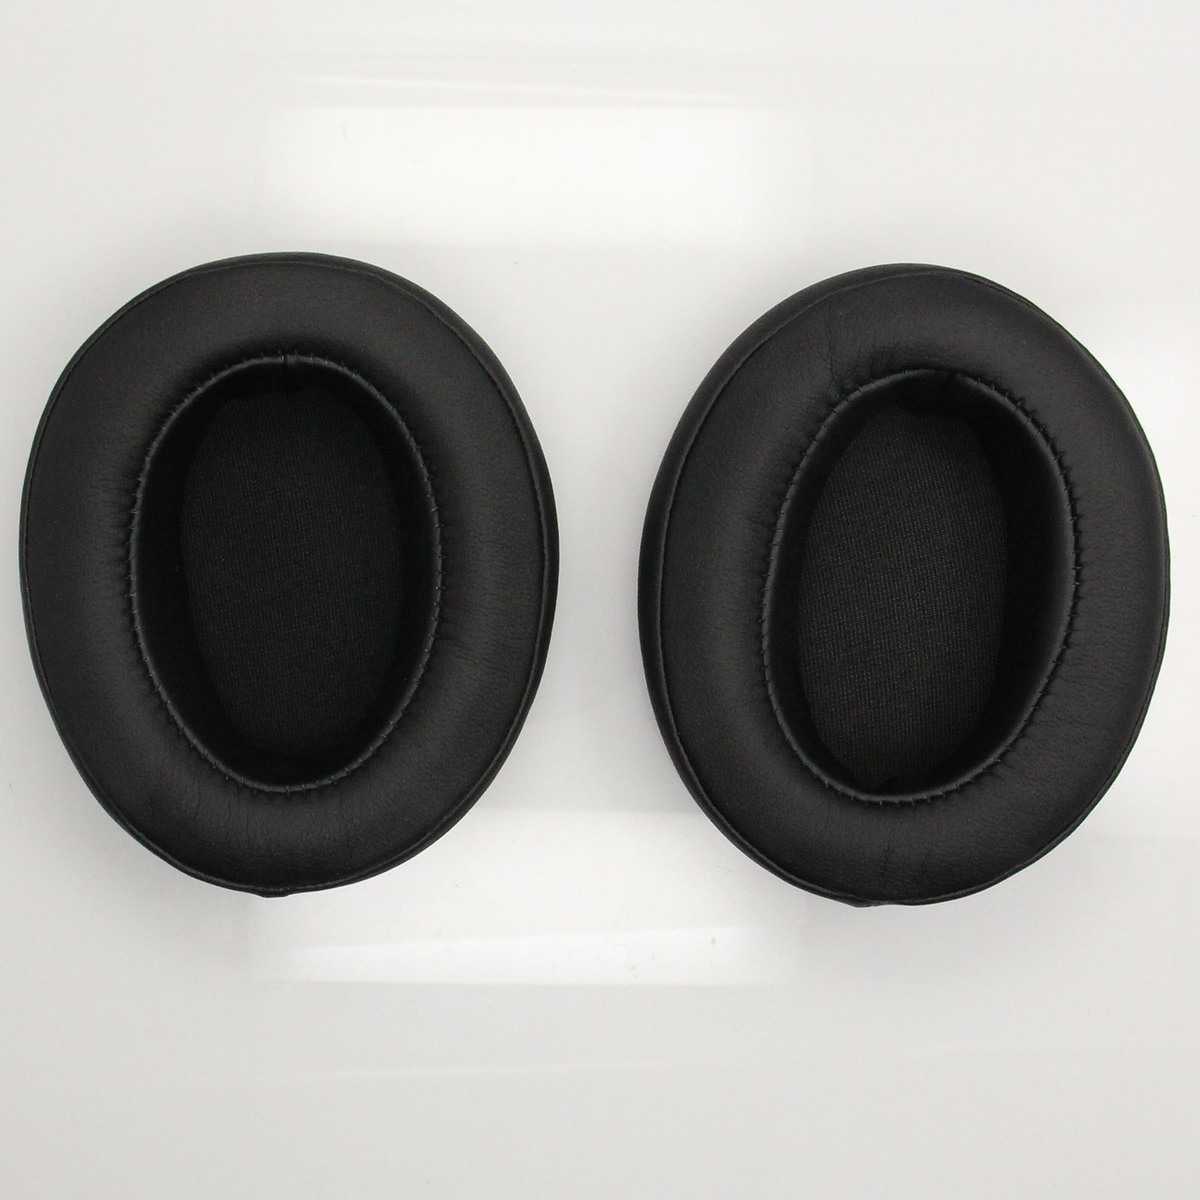 Headphones ear pads for Sennheiser MOMENTUM 2 0 Replacement earpads foam cushion cover high quality in Earphone Accessories from Consumer Electronics